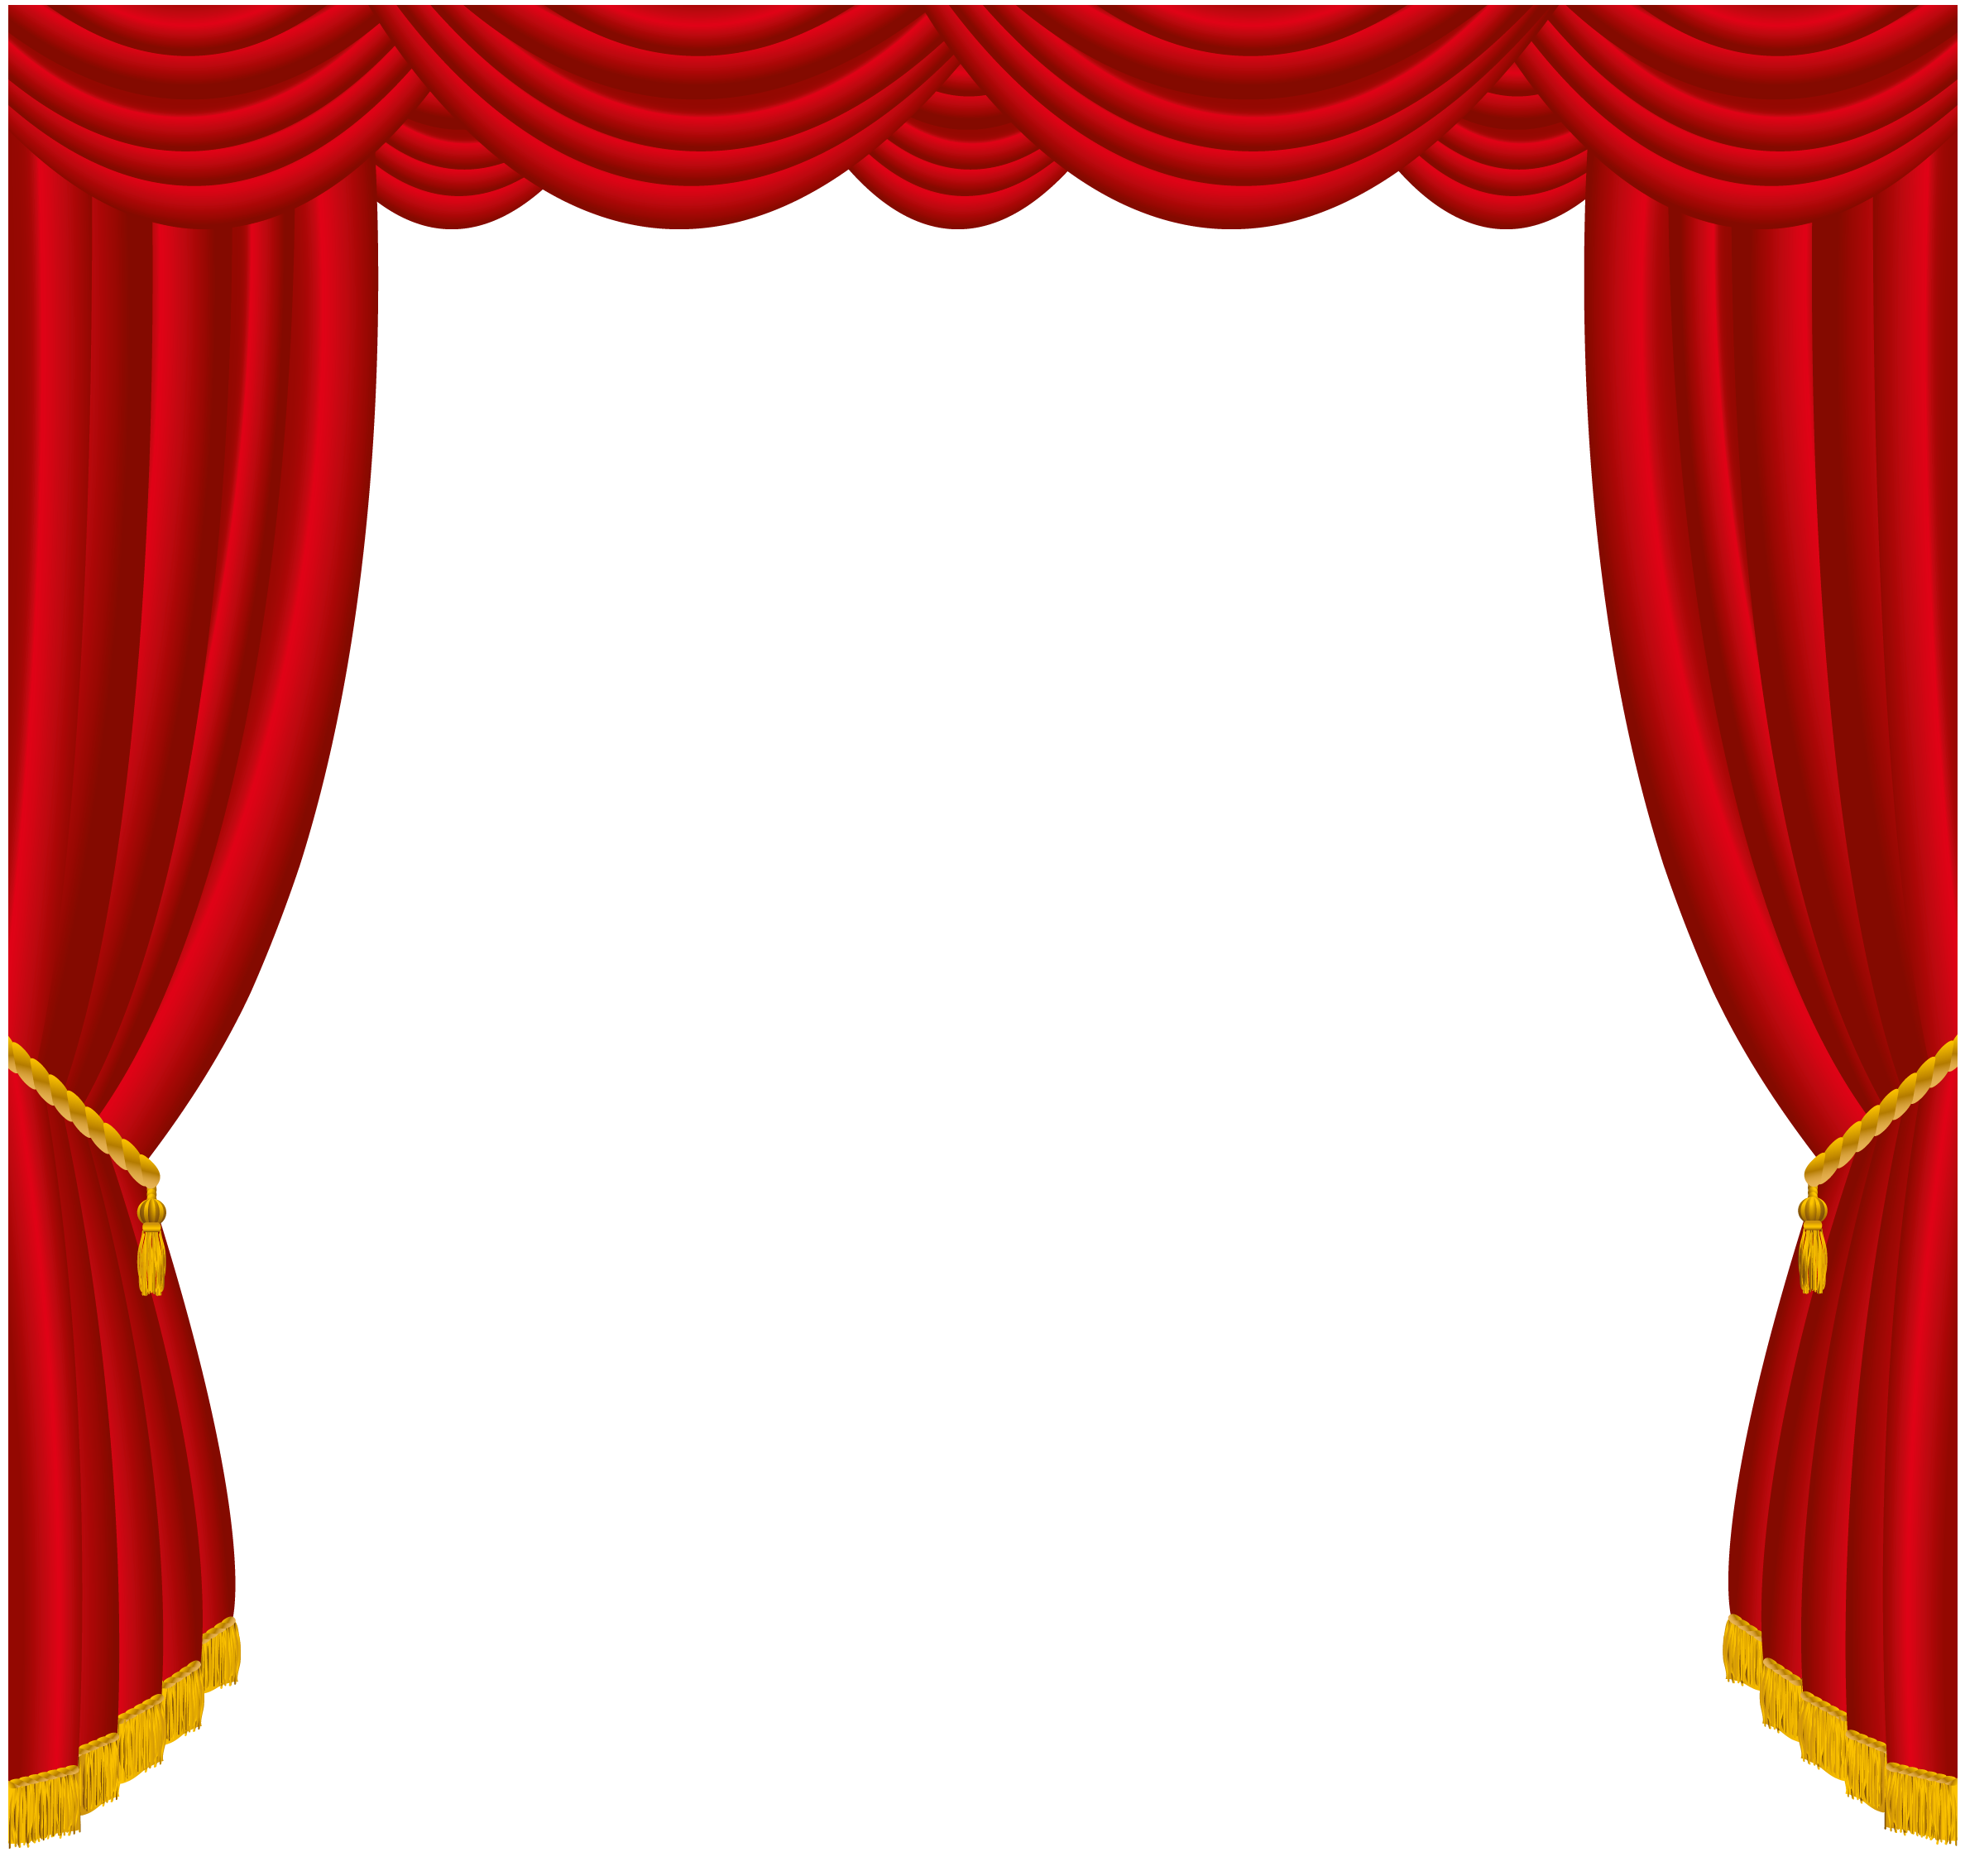 Transparent red decor png. Curtains clipart curtain frame image royalty free stock